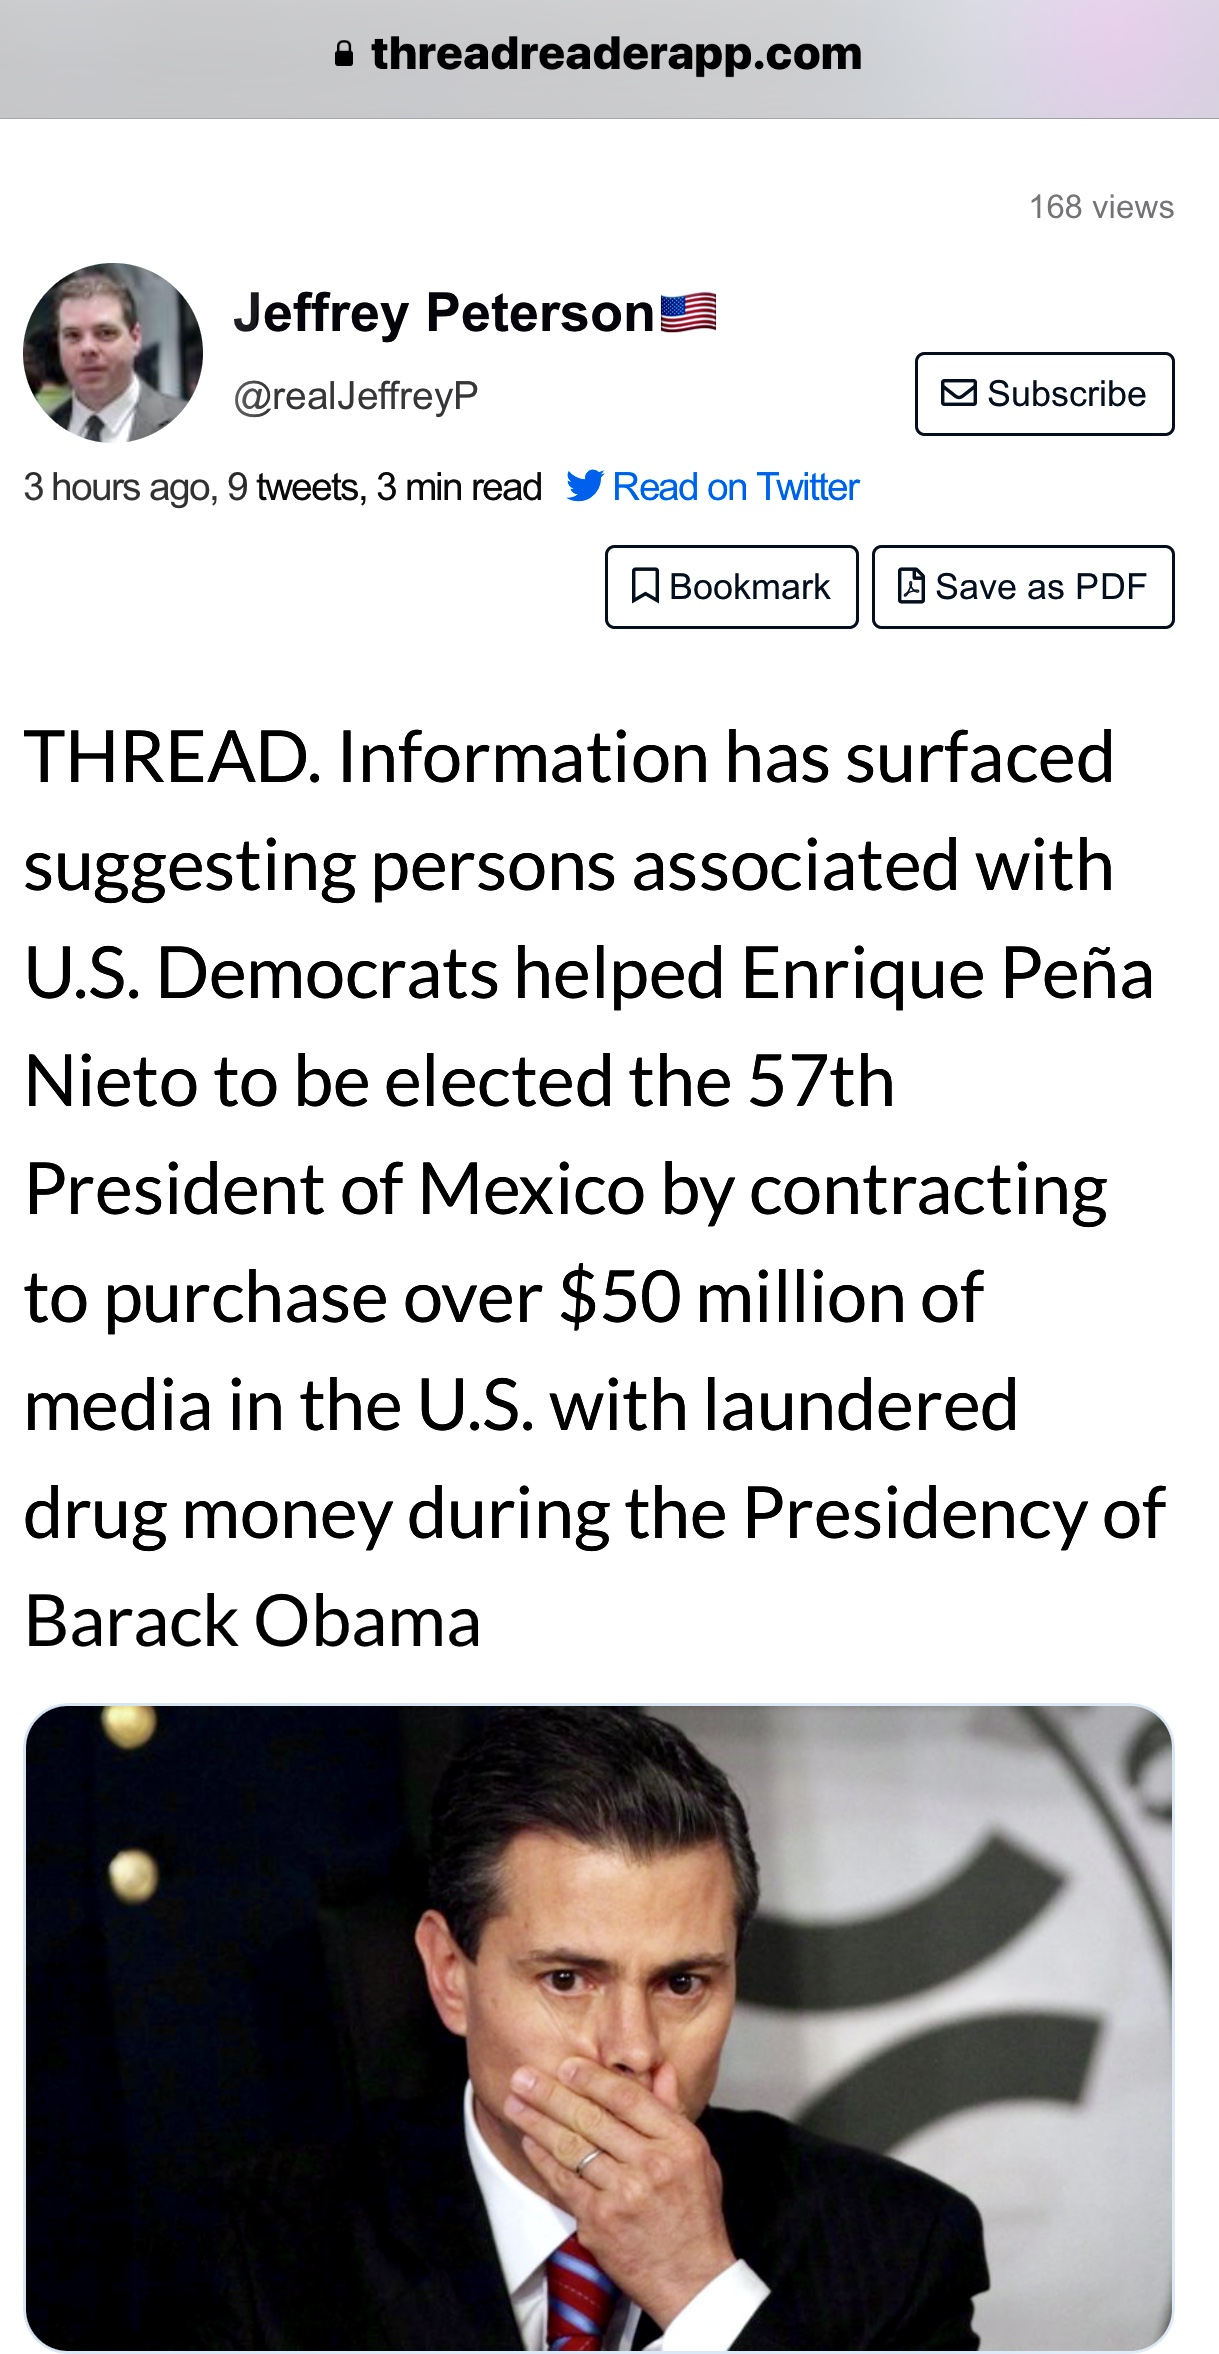 "Thread by @realJeffreyP: ""THREAD. Information has surfaced suggesting persons associated with U.S. Democrats helped Enrique Peña Nieto to be elected the 57th Presiden […]"""